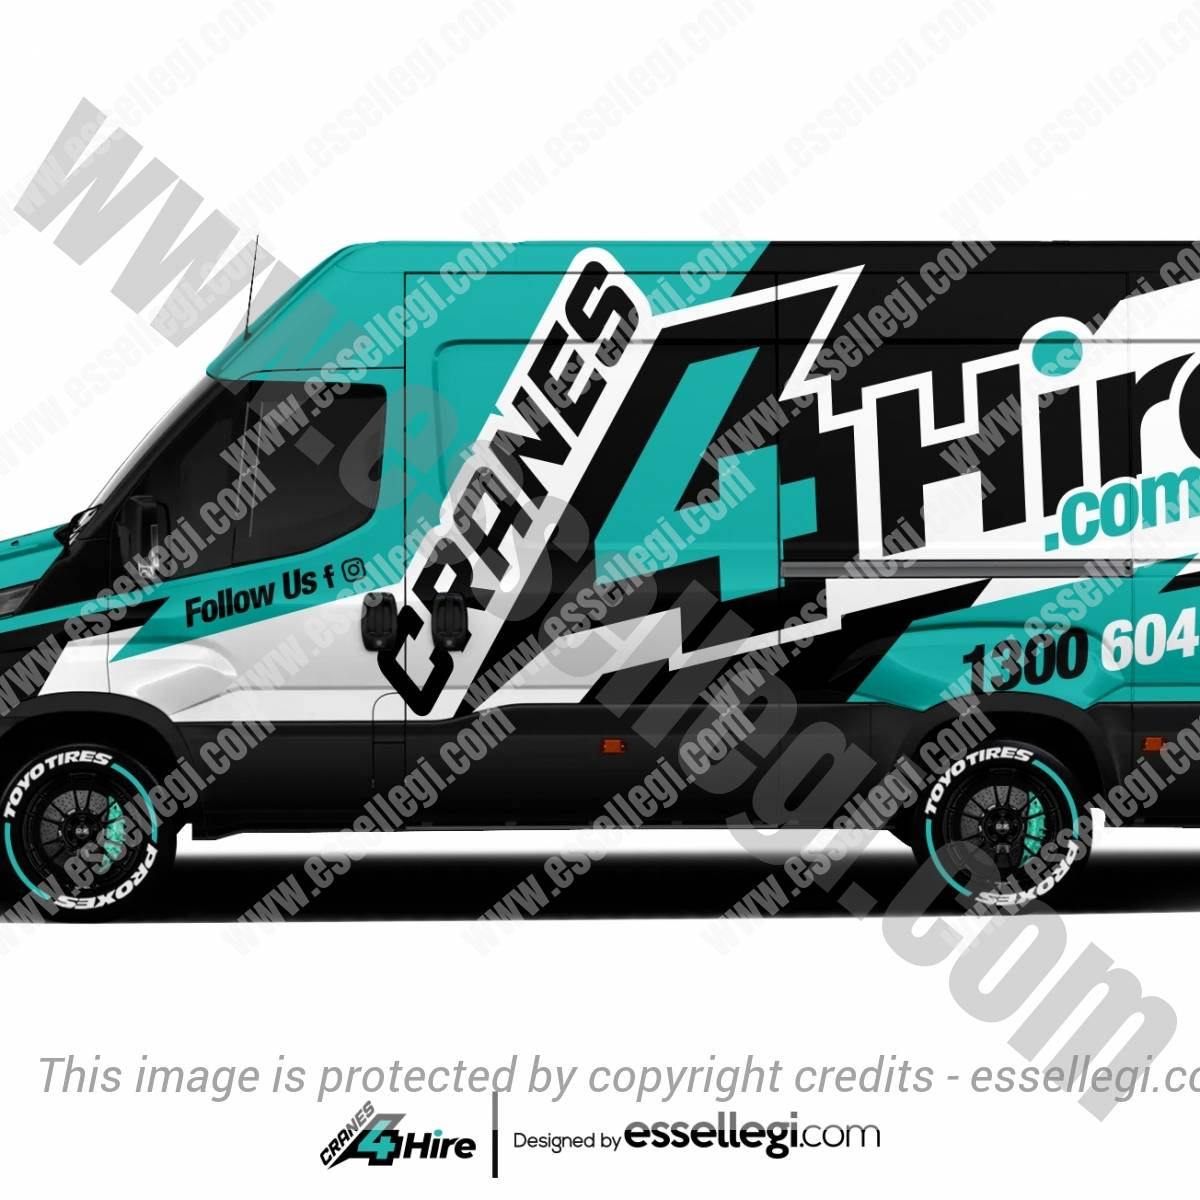 CRANES 4 HIRE | VAN WRAP DESIGN 🇦🇺